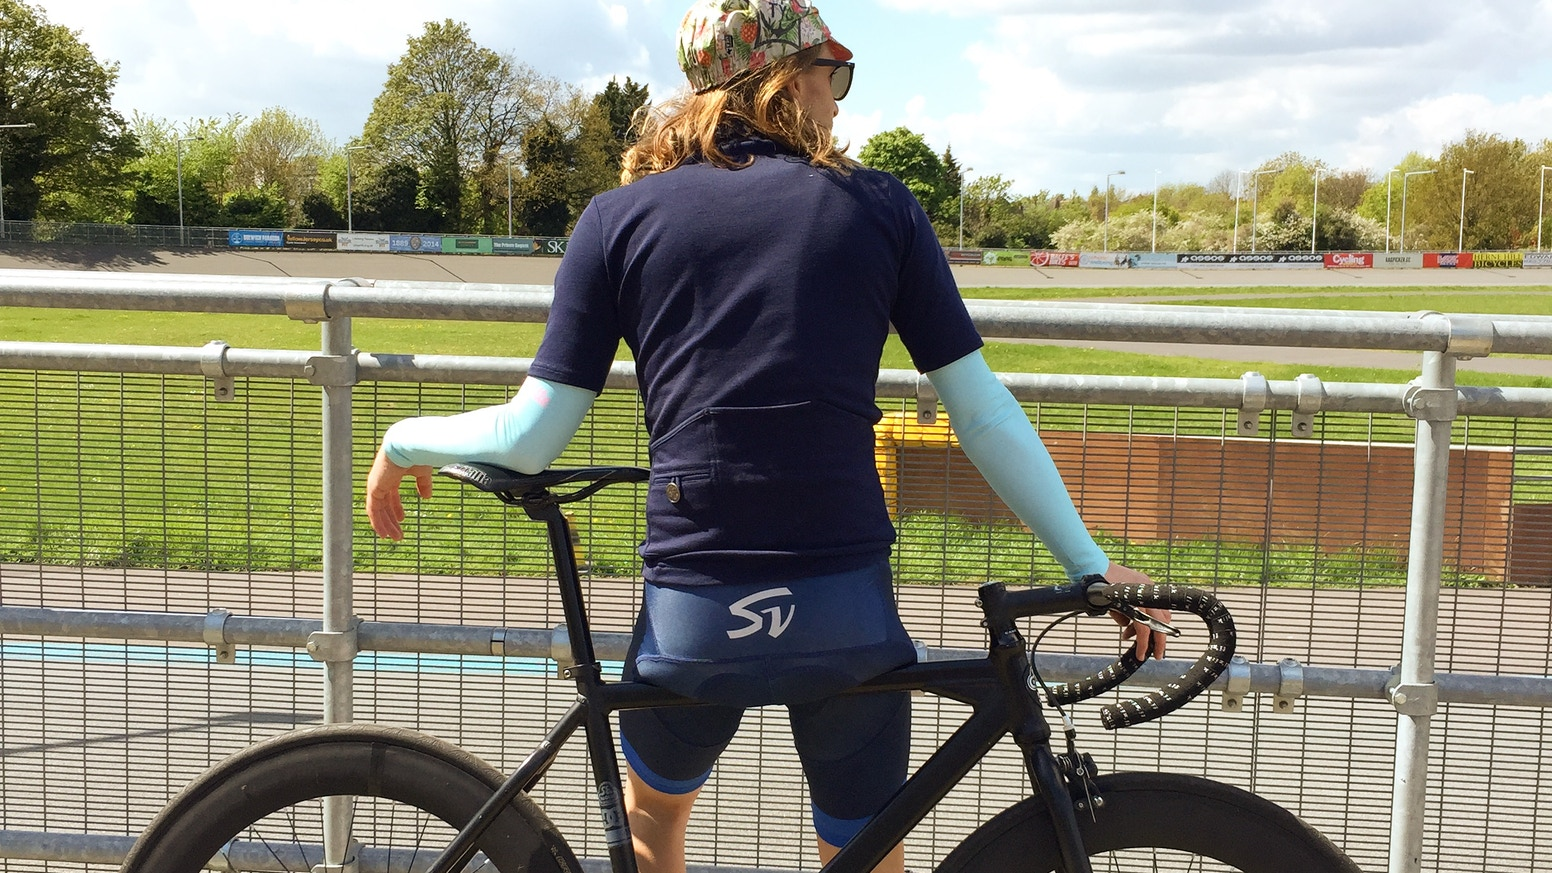 Bringing high quality fabrics and manufacturing together to deliver a premium quality cycling jersey at an affordable price